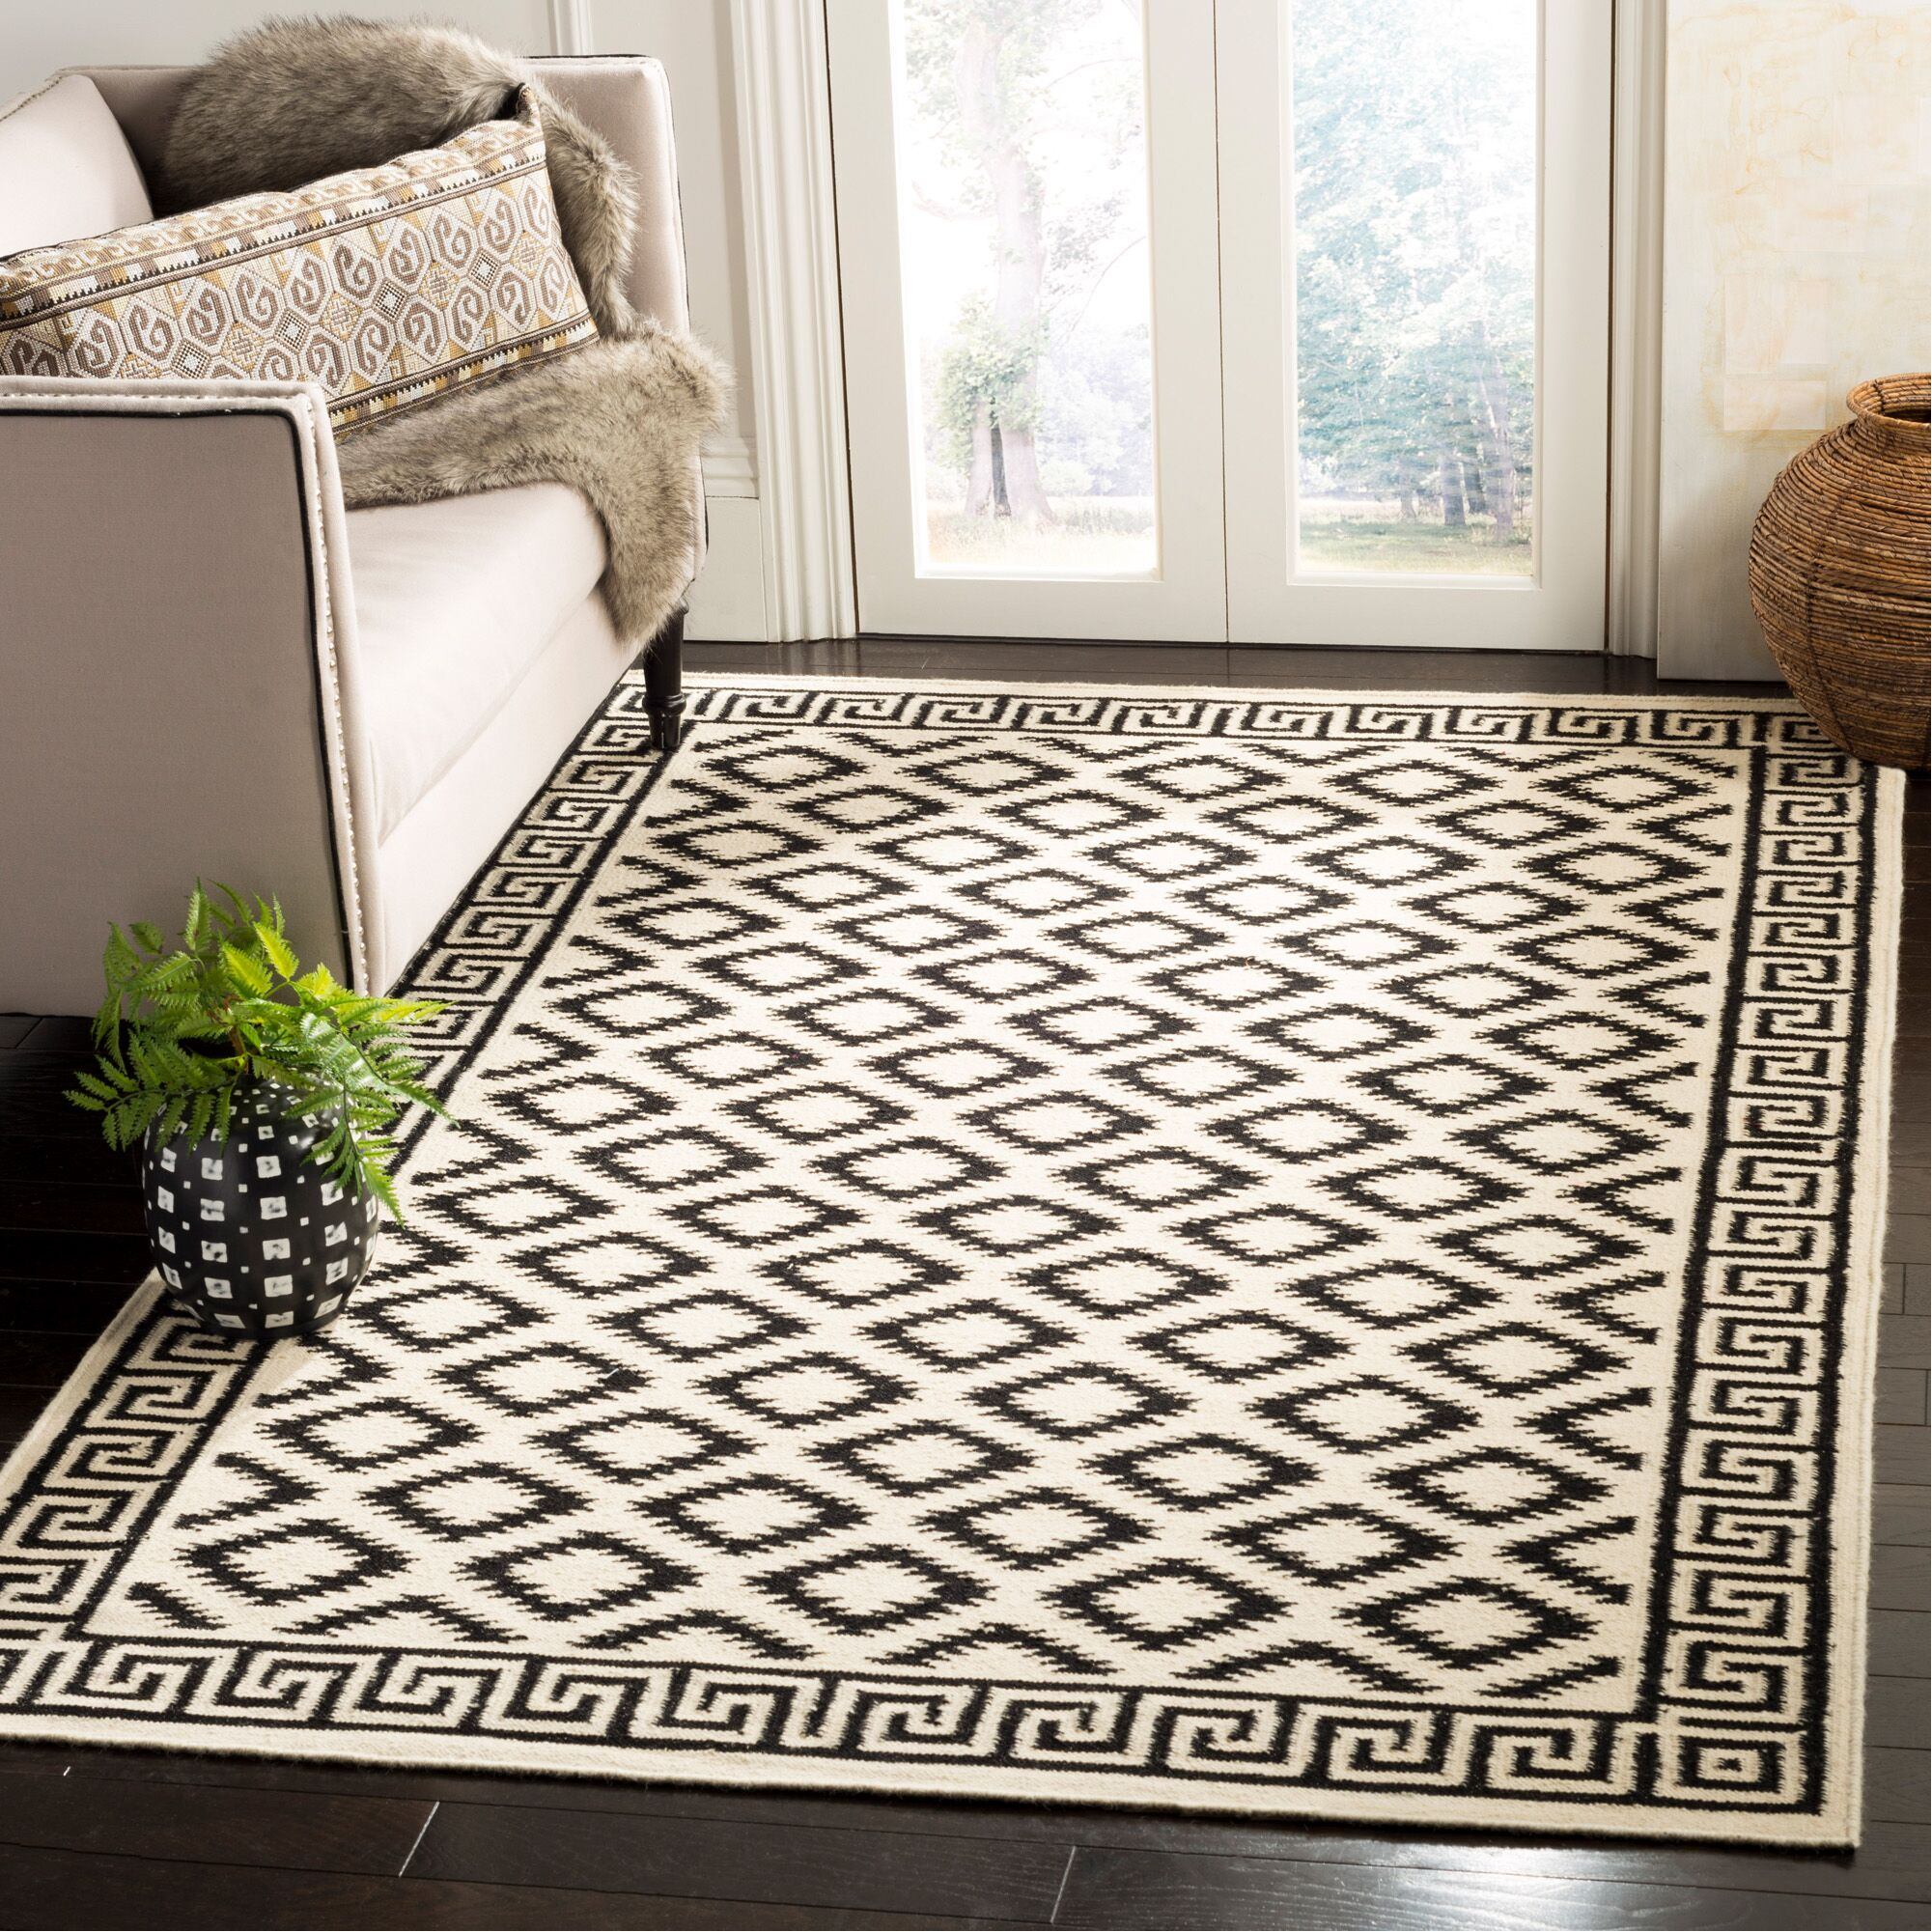 Dhurries Hand-Tufted Wool Brown/Ivory Area Rug Rug Size: Rectangle 5' x 8'